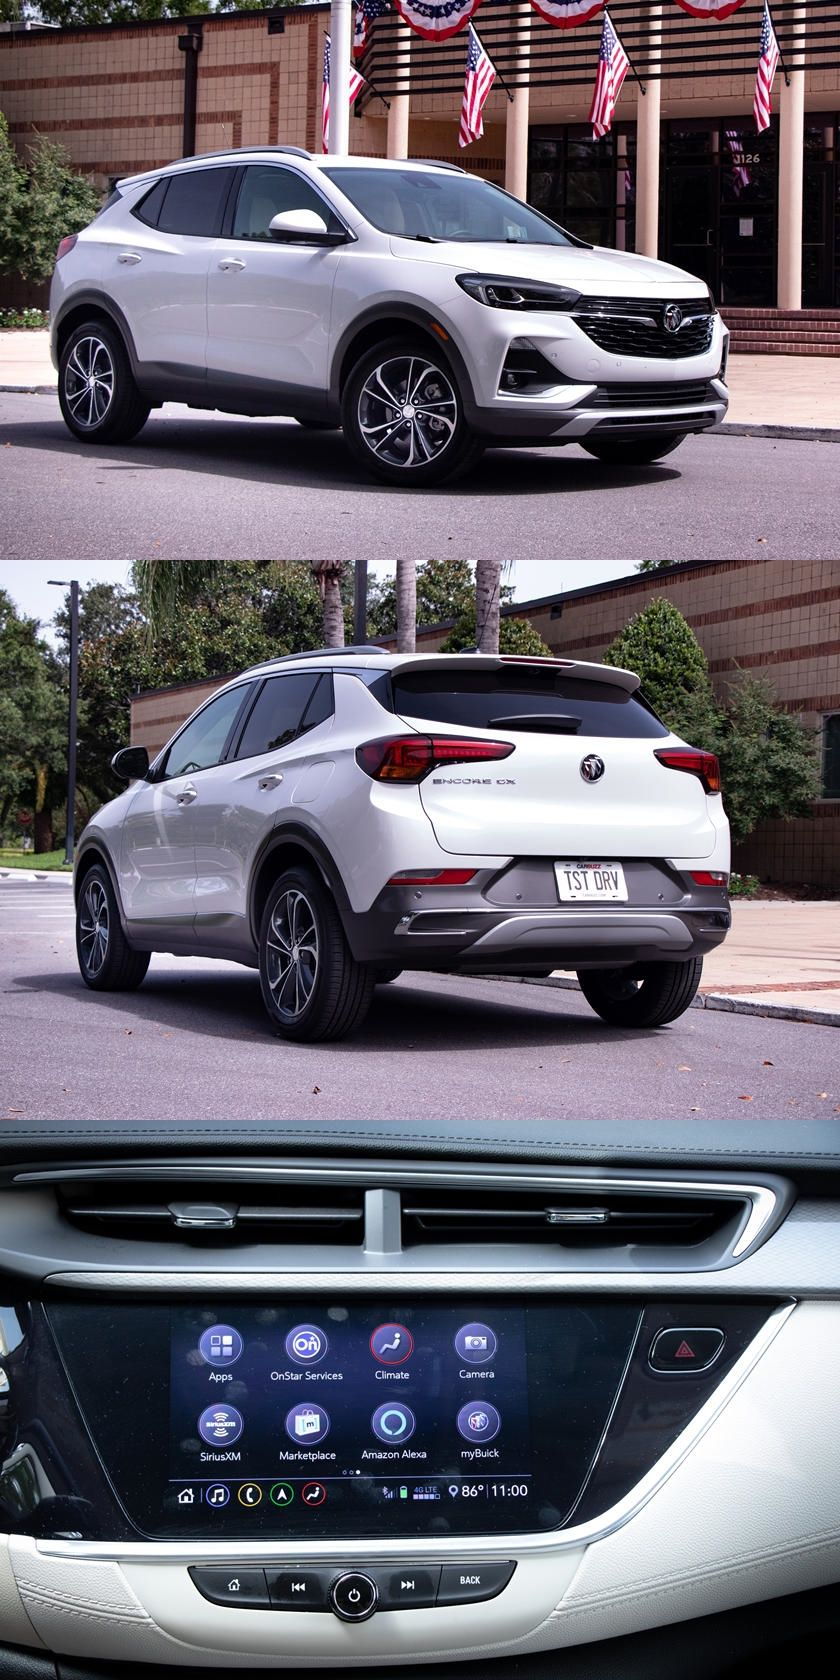 2020 Buick Encore Gx Has Some Incredible Tech Features But A Powerful Engine Isn T One Of Them In 2020 Buick Encore Buick Tech Features